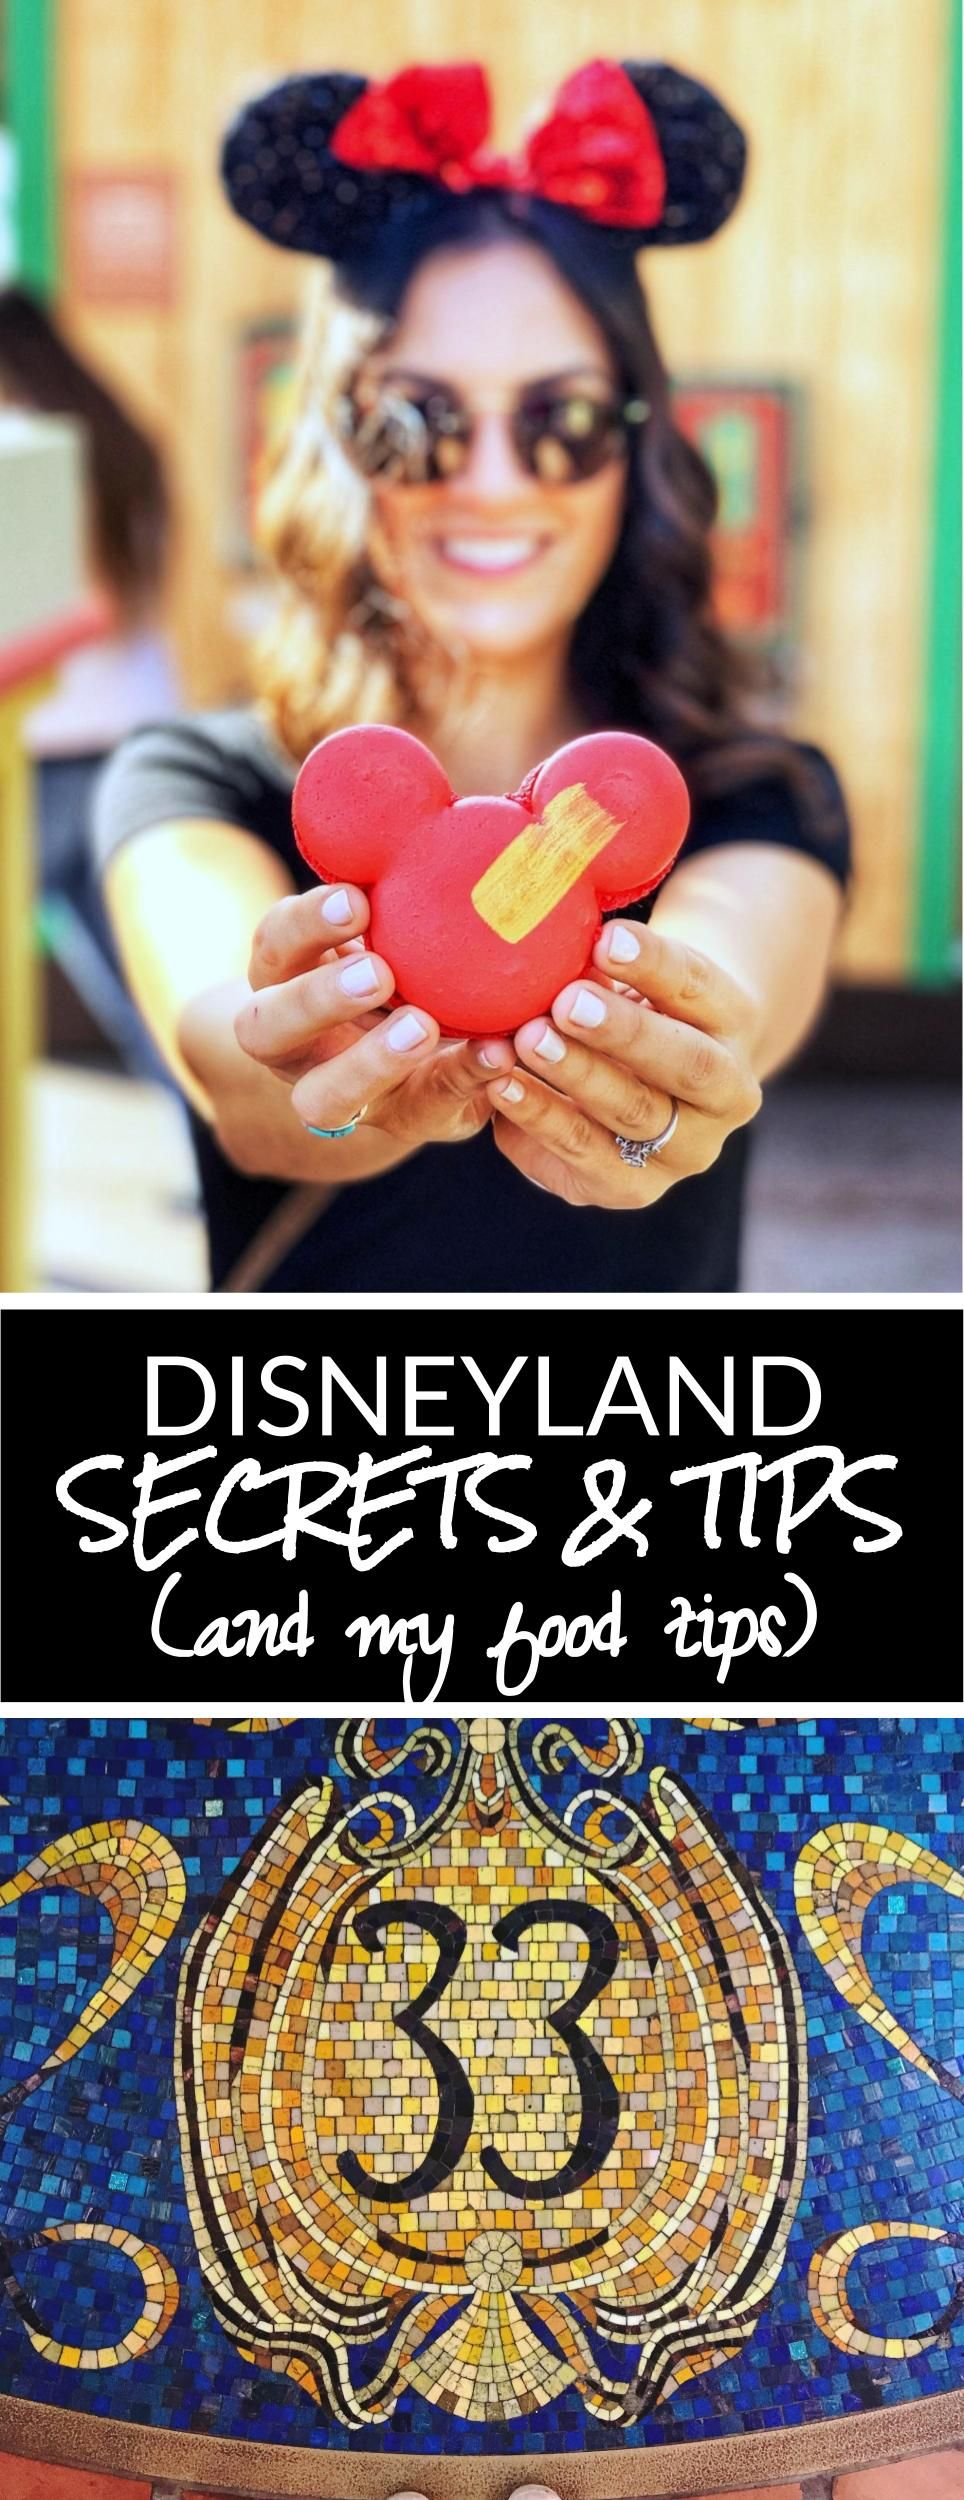 Disneyland Food Guide: My favorite eateries, the best booze, private clubs, and how to get in for free! #disneylandfood